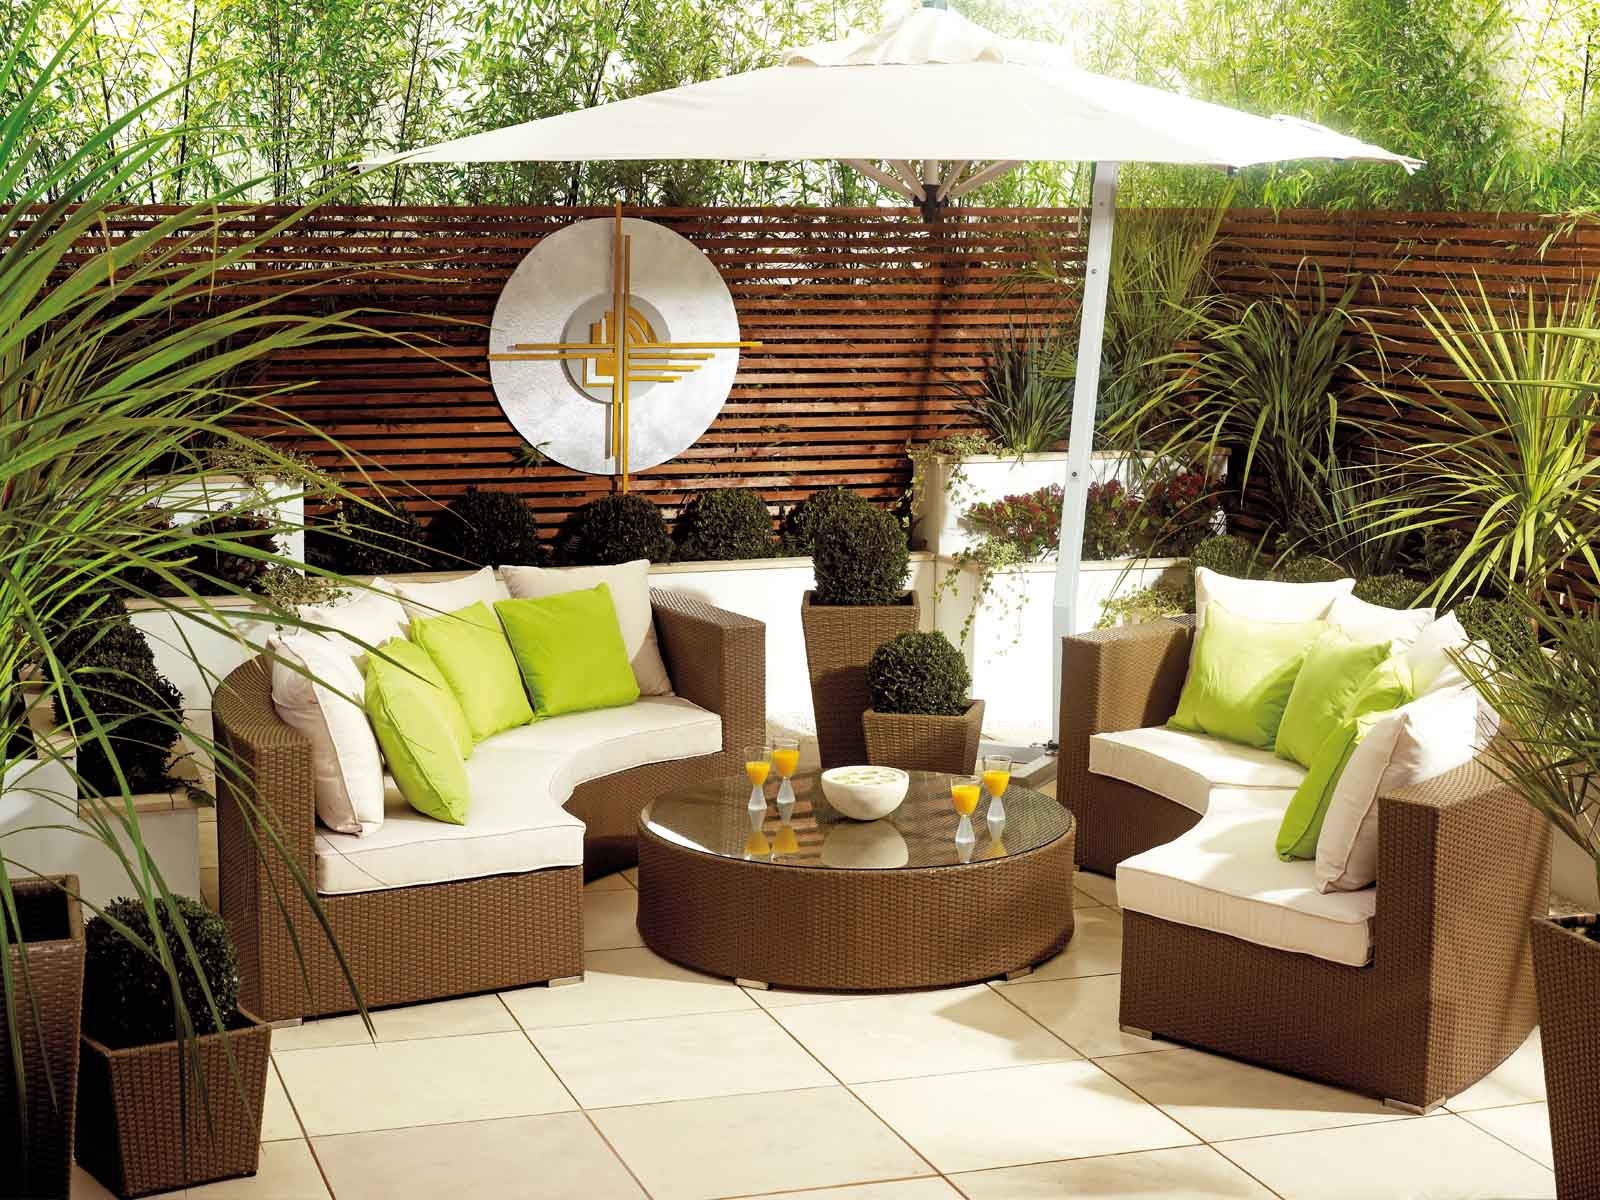 Mark your perfect first impression with outdoor living furniture.